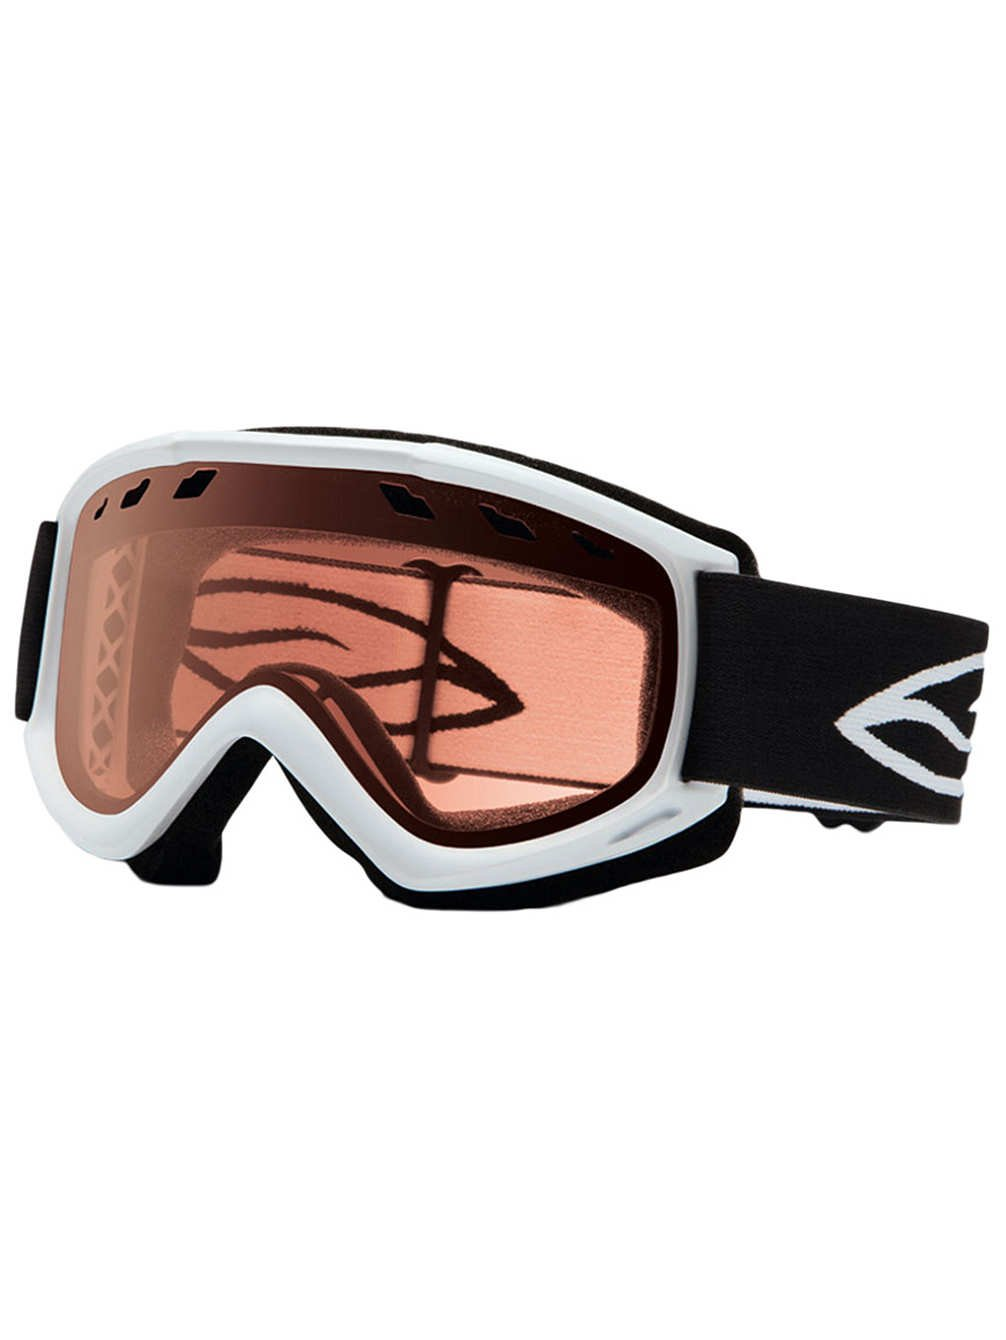 Smith Optics Cascade Airflow Series Snocross Snowmobile Goggles Eyewear - Cobalt/Gold Lite / One Size Fits All